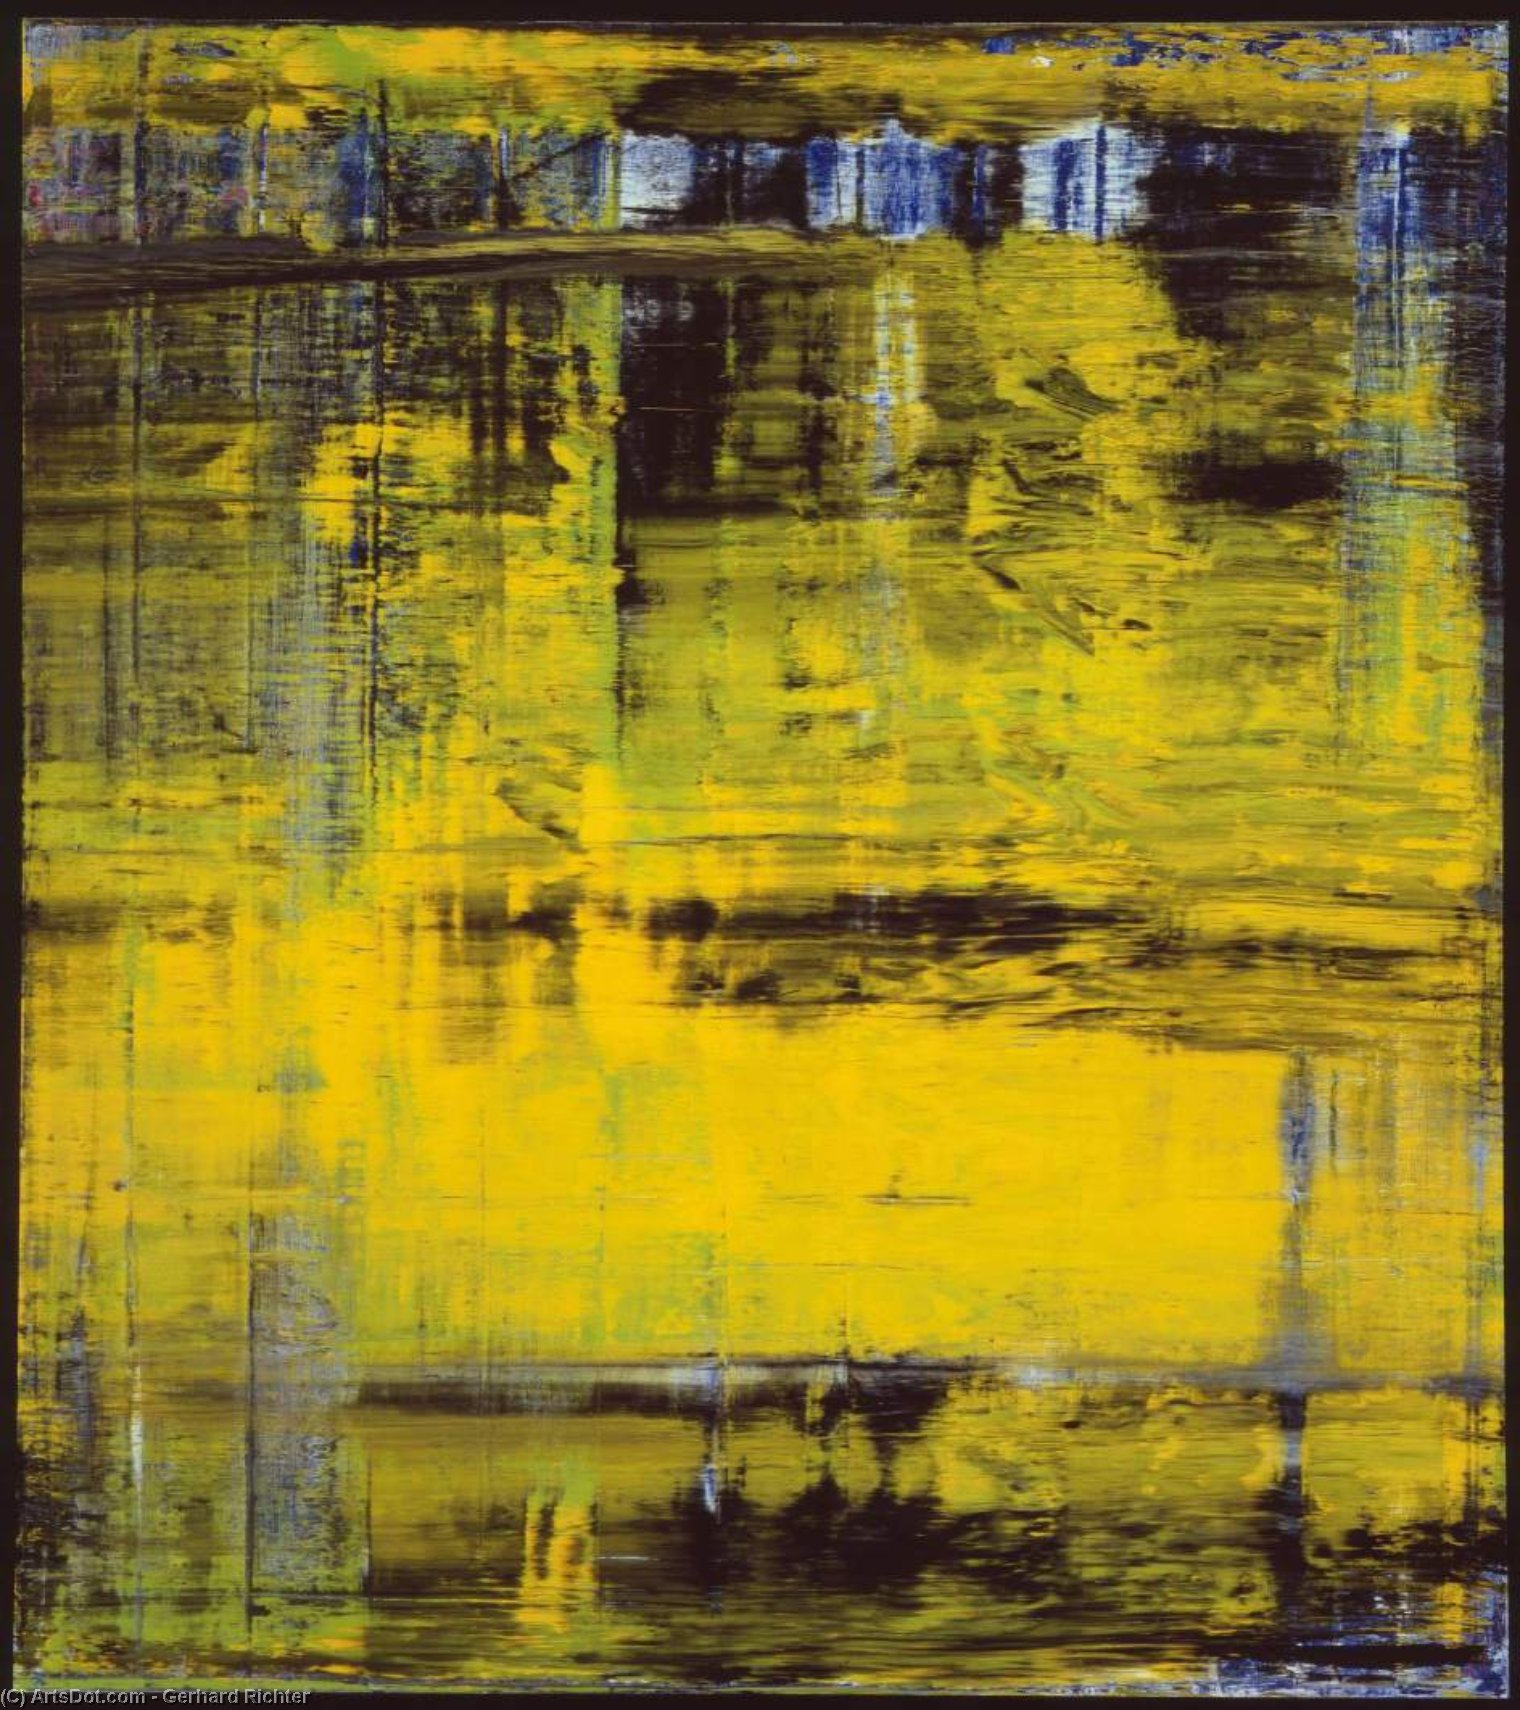 Abstract Painting No. 809-3 by Gerhard Richter